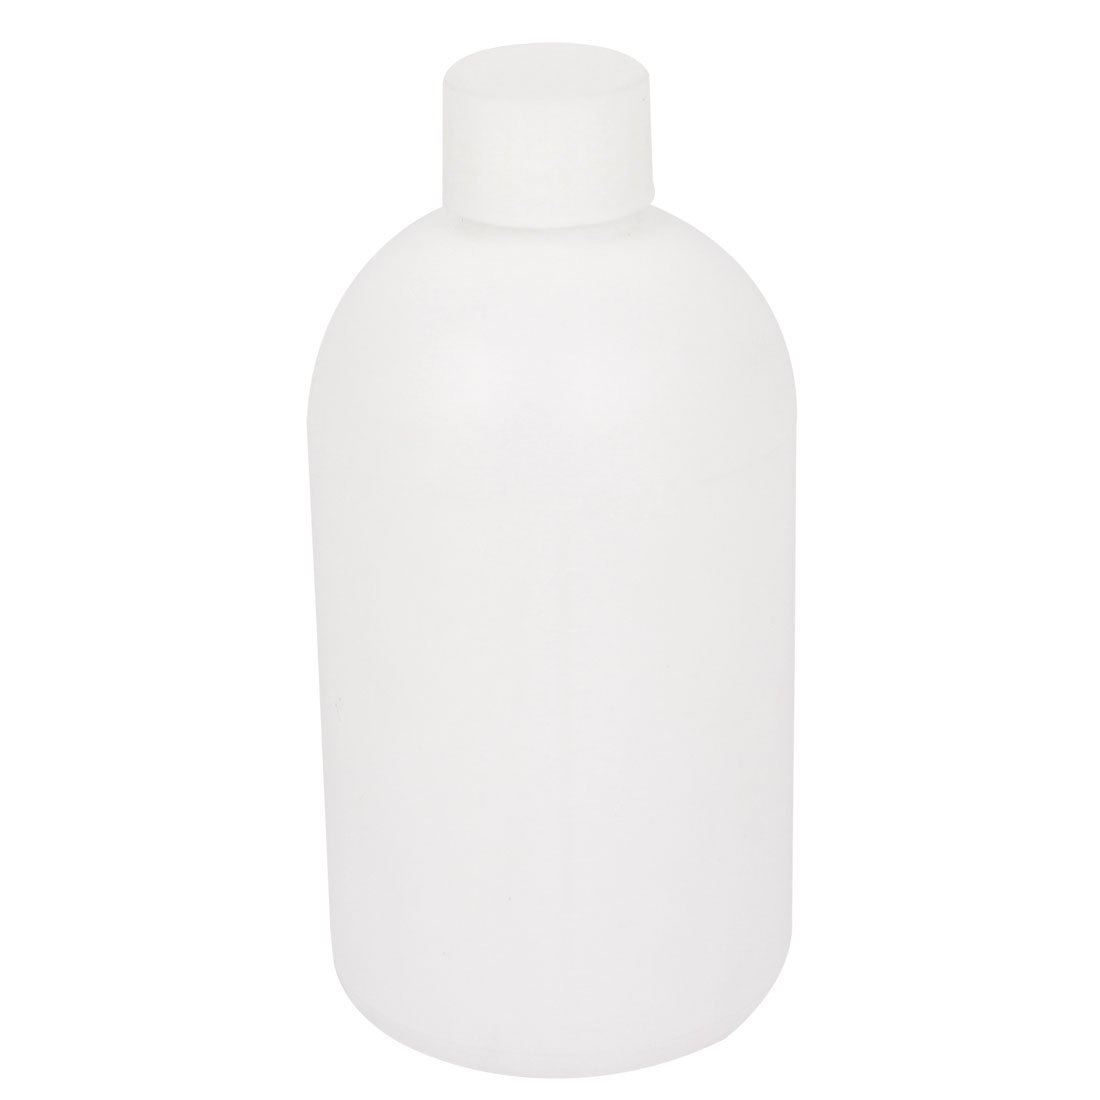 sourcingmap® Graduated 500ml Plastic Bottle HDPE White Watertight Screw-Top Lid a15050400ux0211